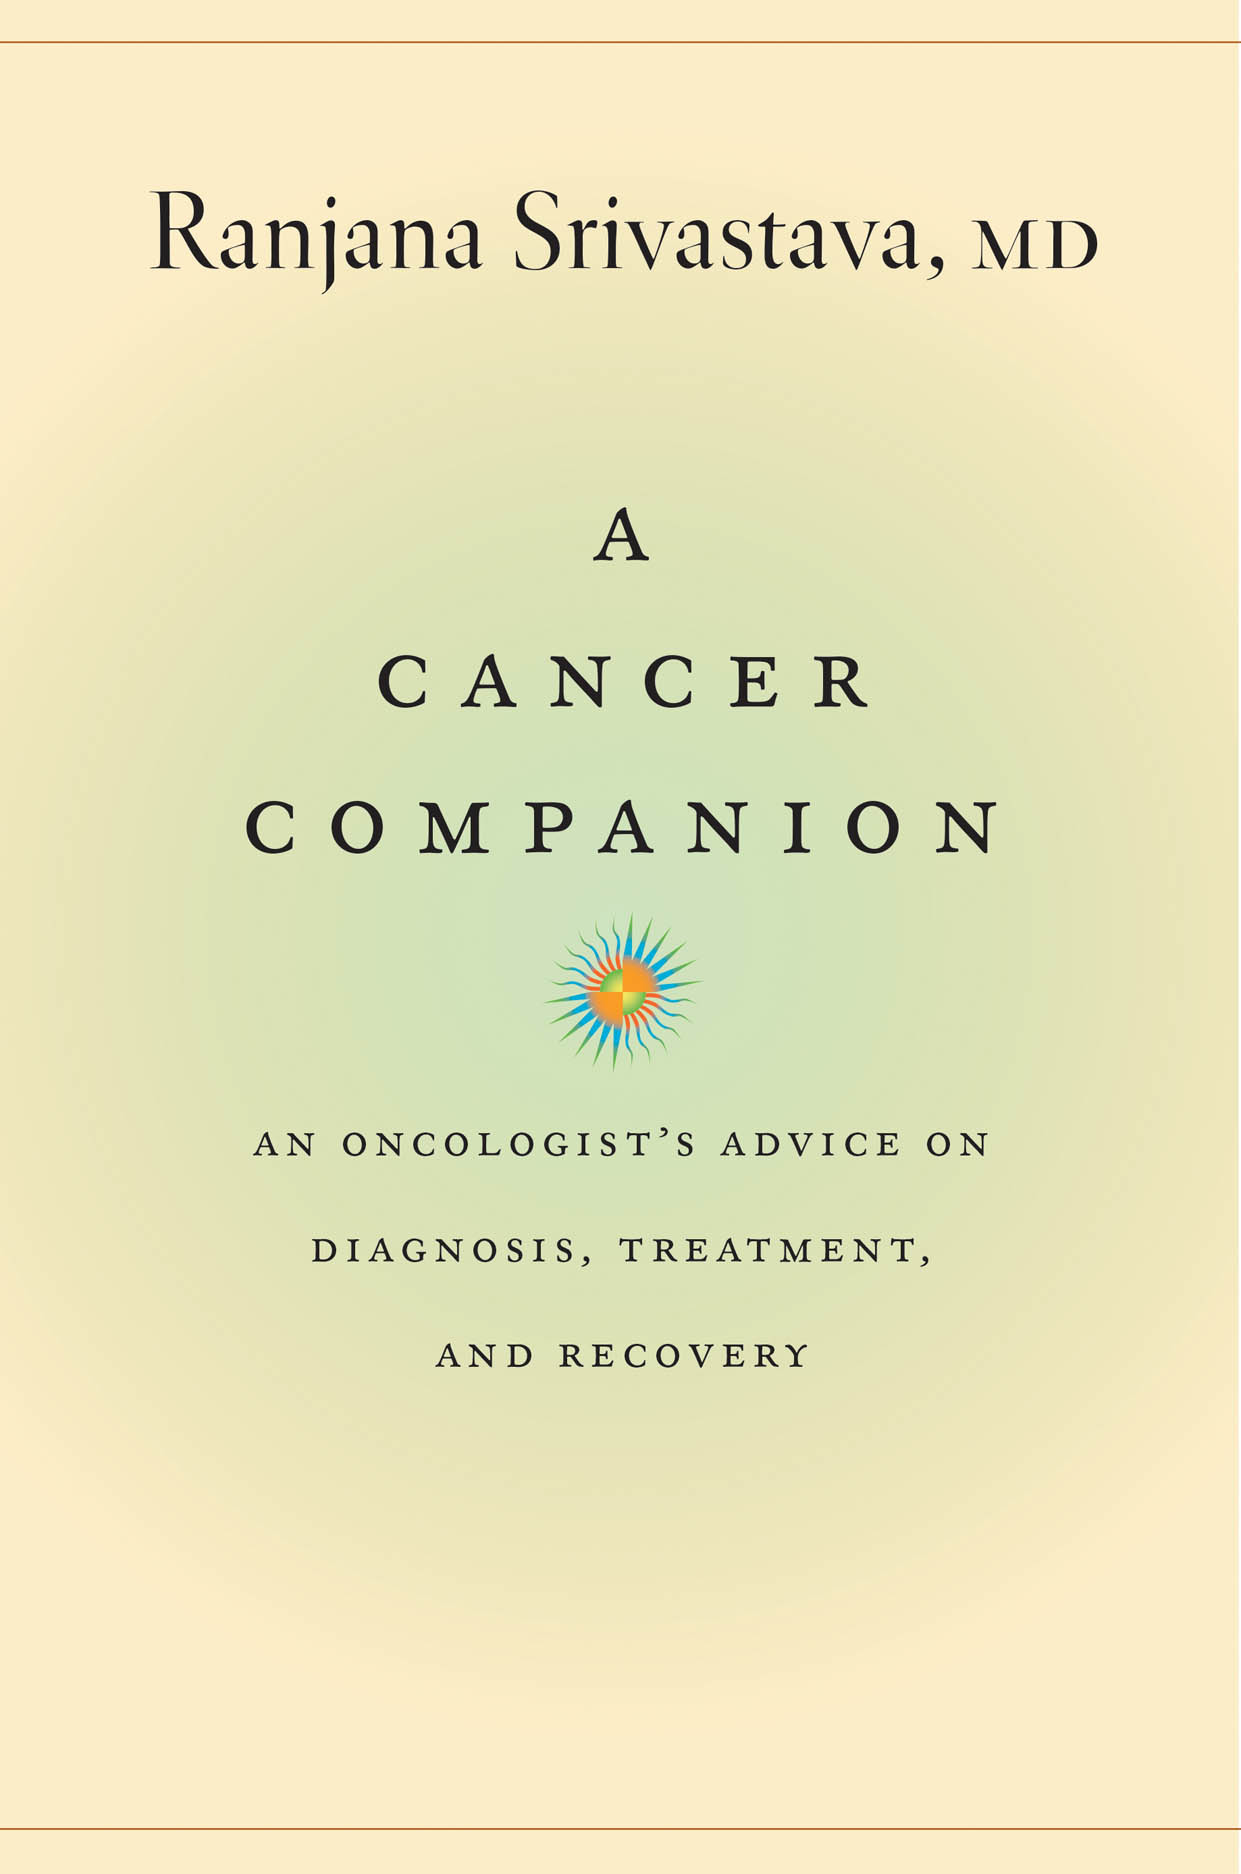 A Cancer Companion: An Oncologist's Advice on Diagnosis, Treatment, and Recovery